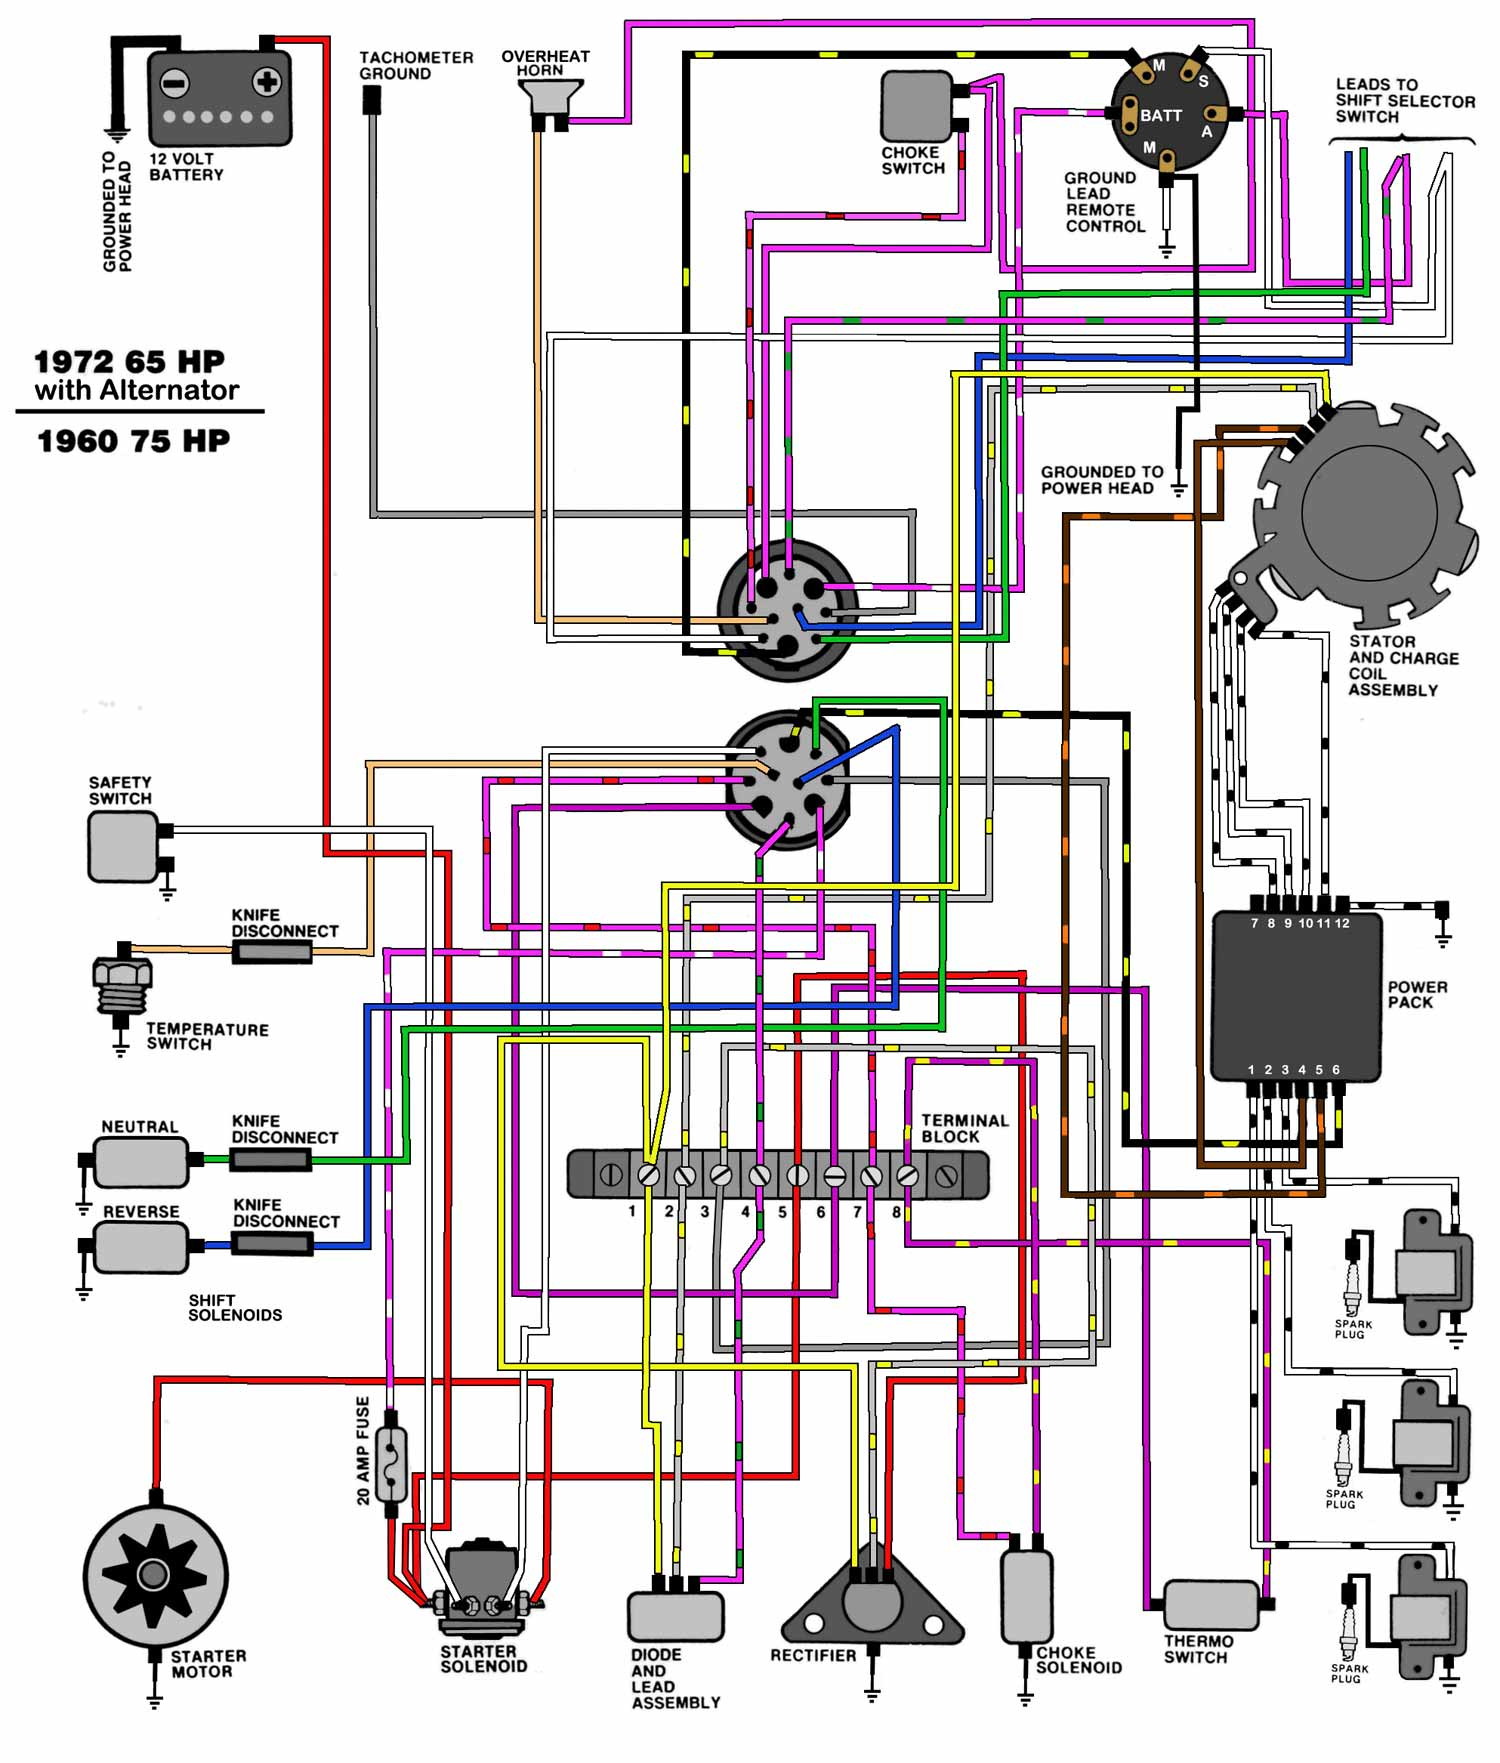 1972_65_Eshift help! trying to adapt a '65 johnson to a newer control [archive omc wiring harness diagram at gsmx.co